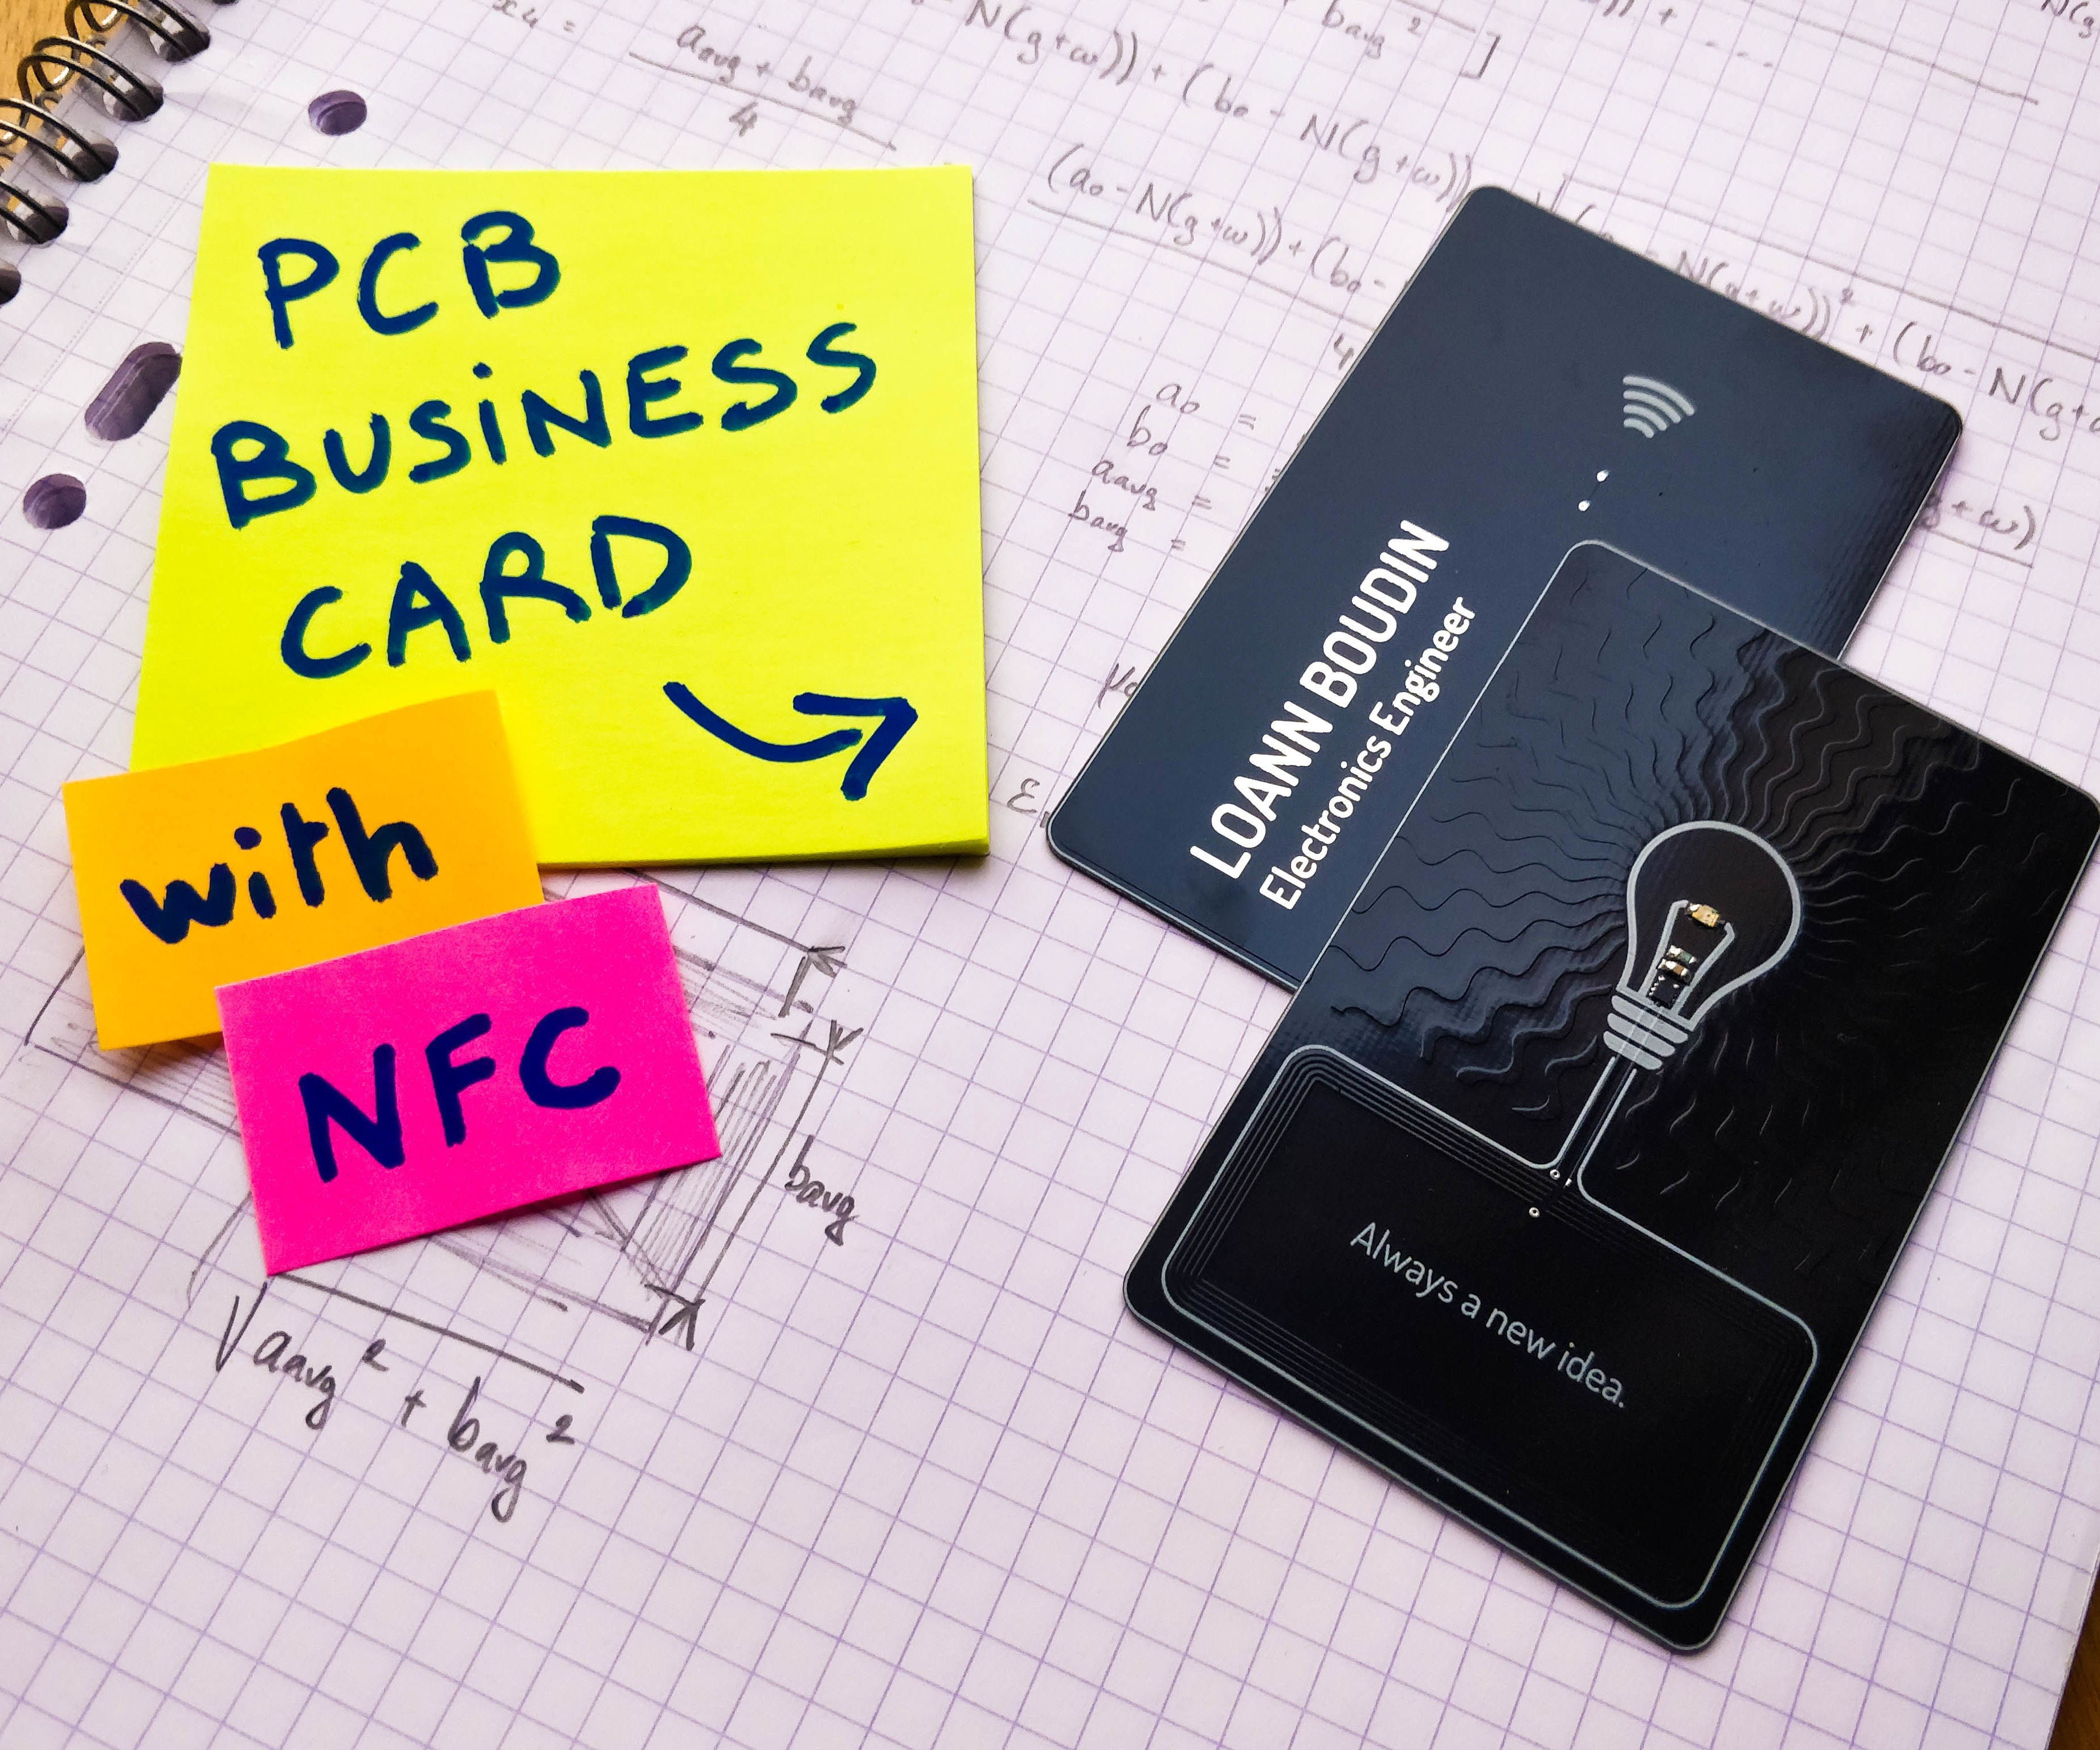 Pcb Business Card With Nfc 18 Steps With Pictures Instructables